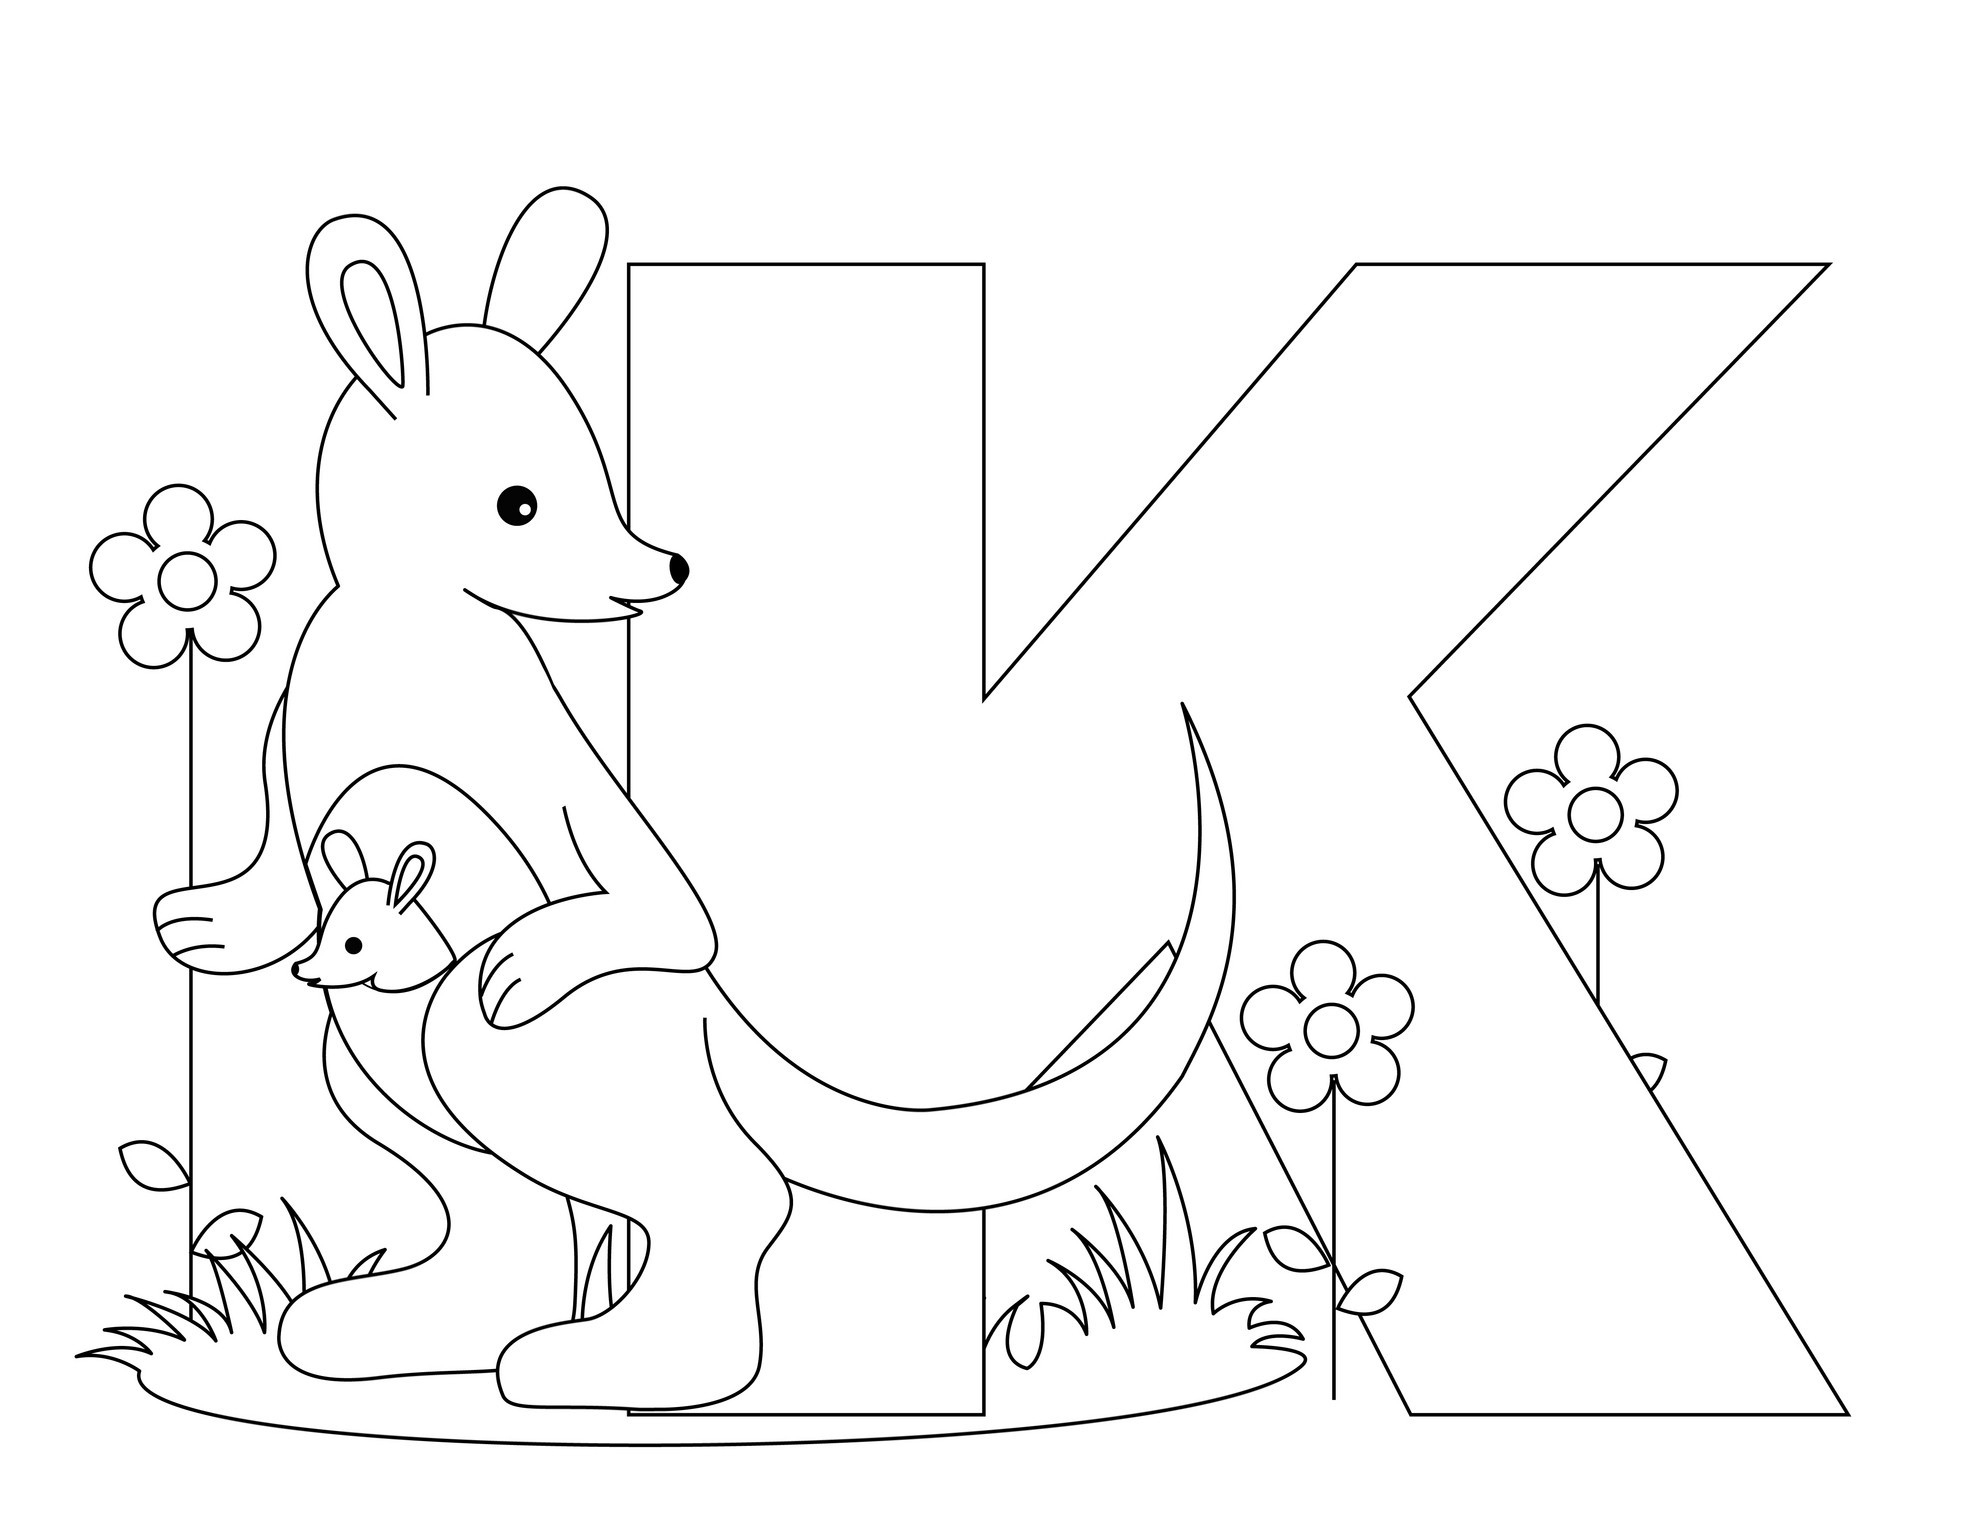 U Is For Umbrella Coloring Page Free Printable Alphabe...